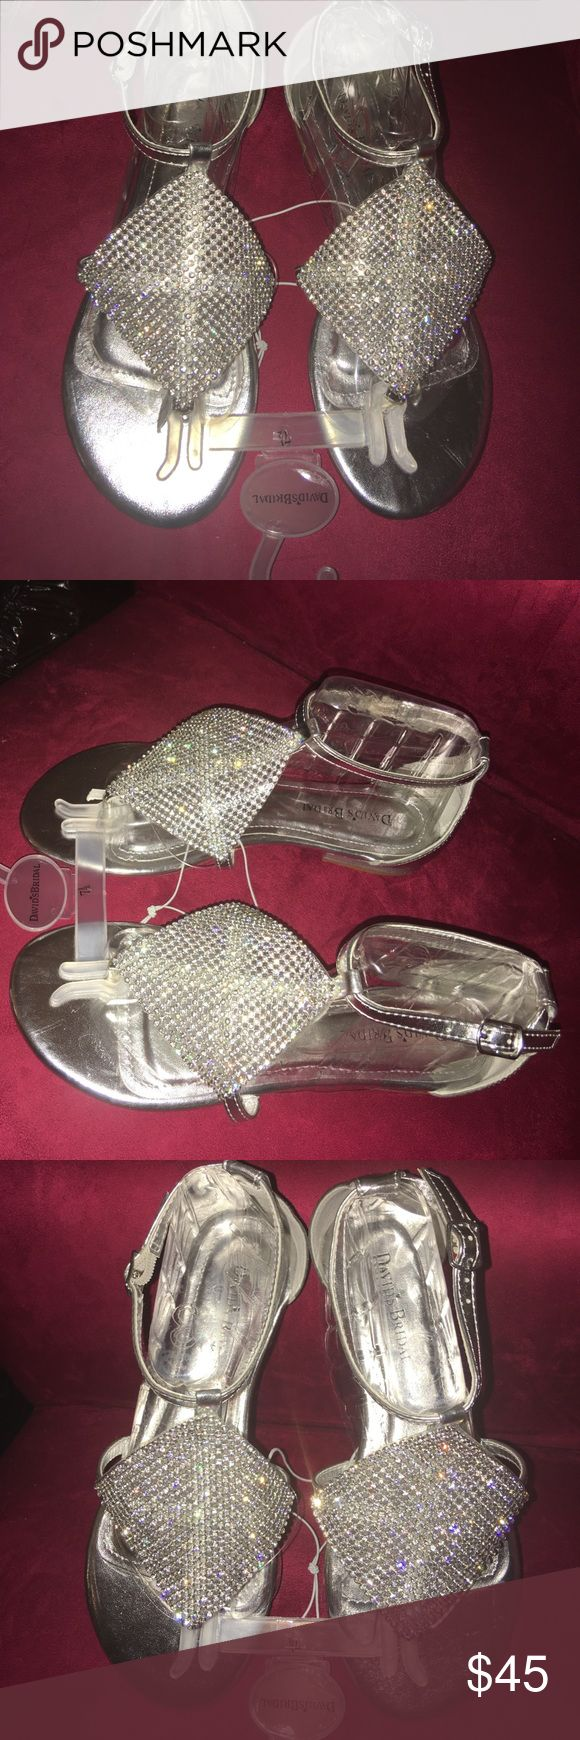 NEW‼️ Diamond Embellished SilverSandals, Size 7.5 Brand new and never worn diamond sandals from David's Bridal. Very fancy! Has tags attached. Always accepting offers! David's Bridal Shoes Sandals